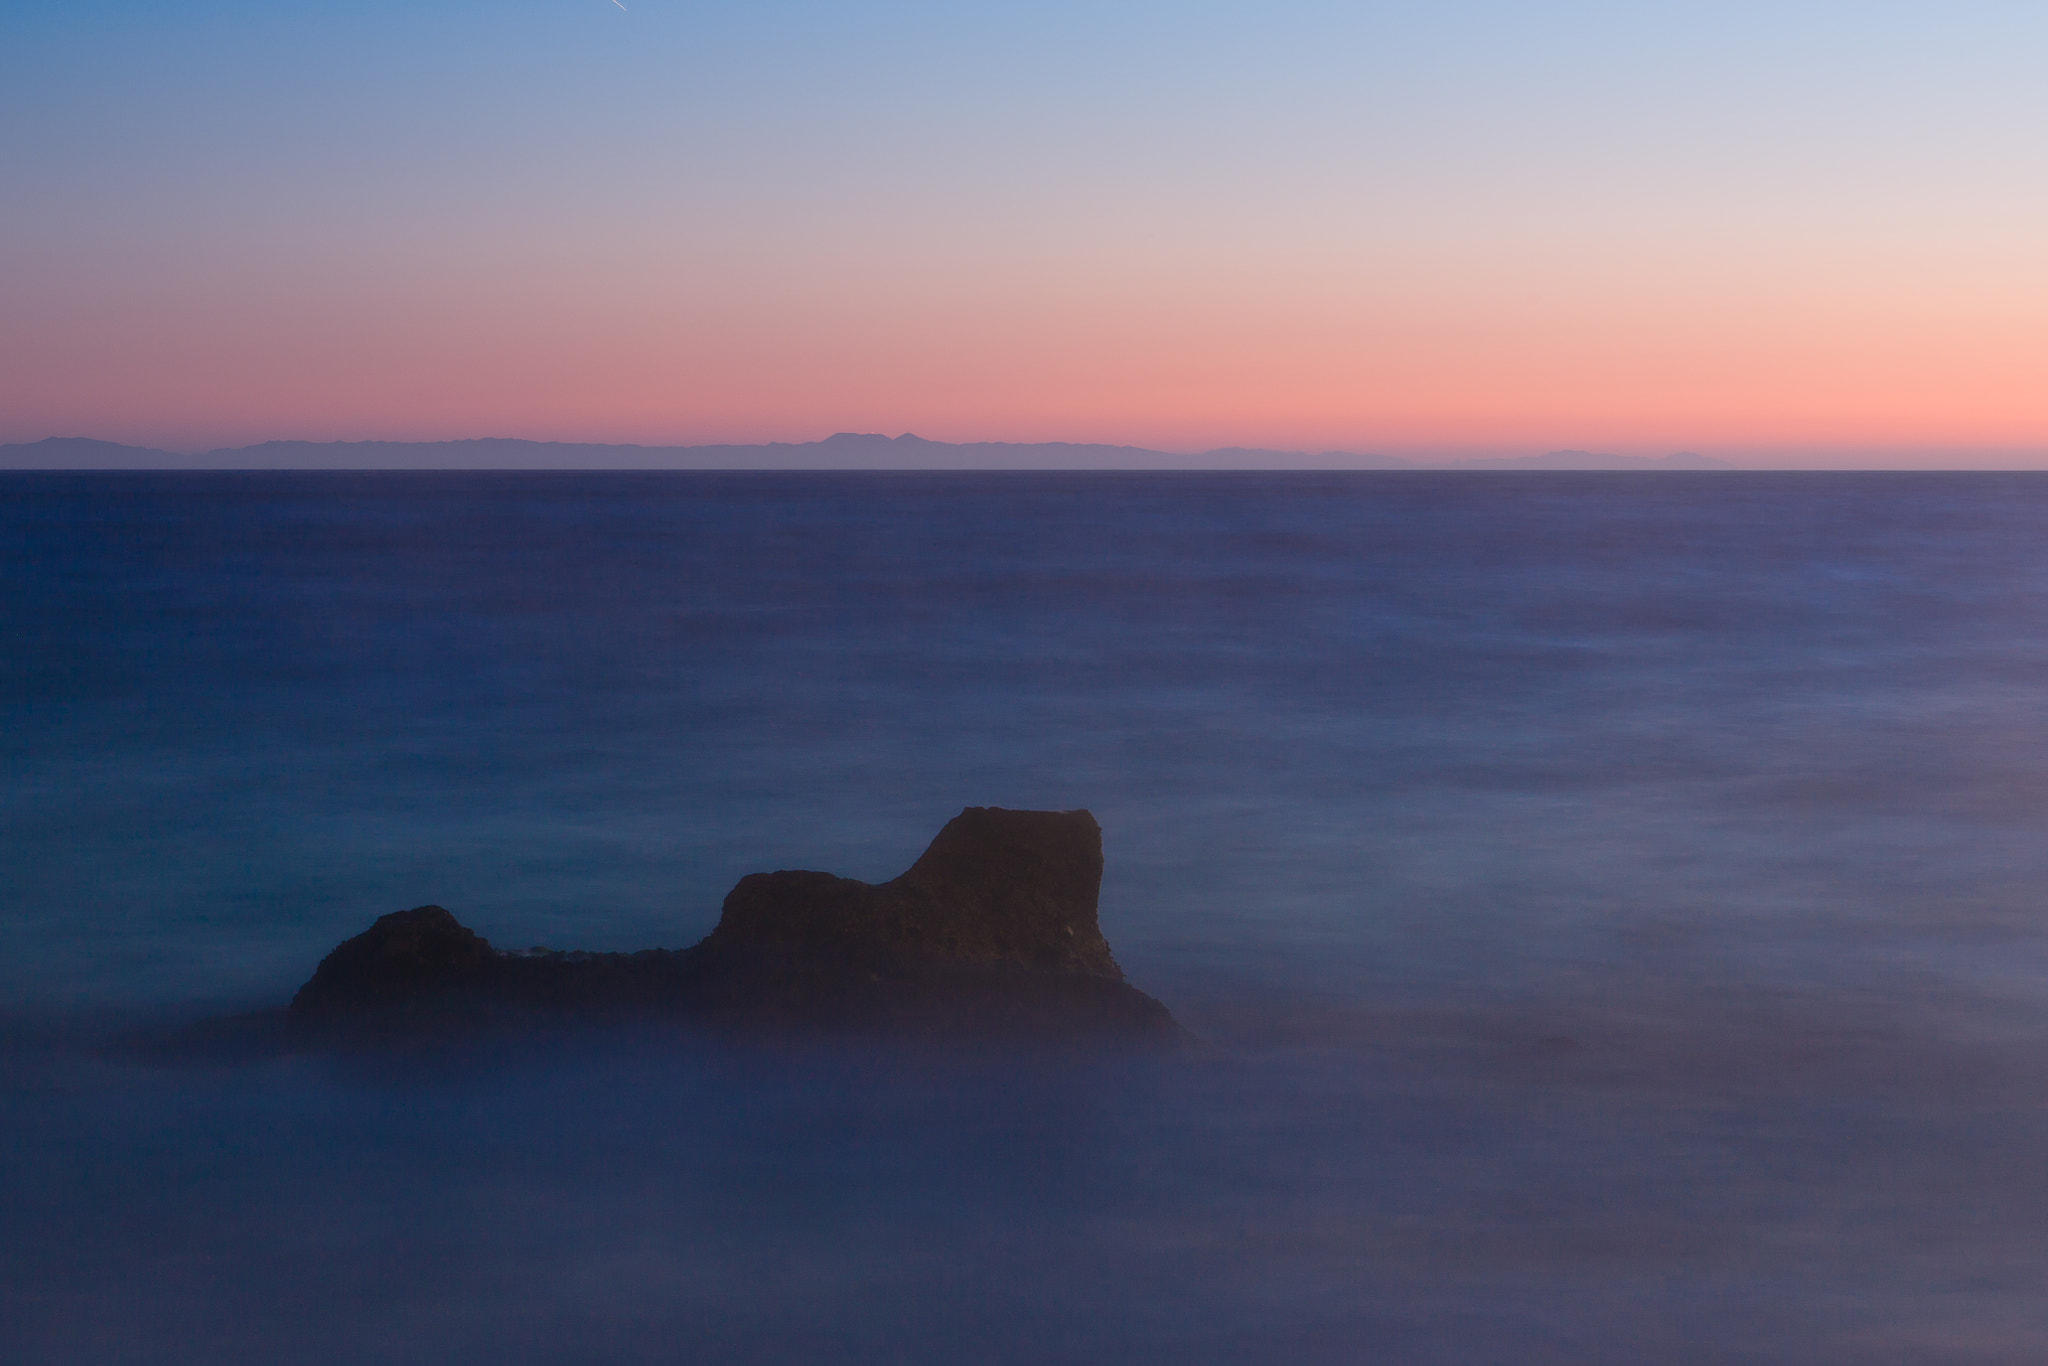 Photograph Blanket of Ocean by Tim Strempfer on 500px